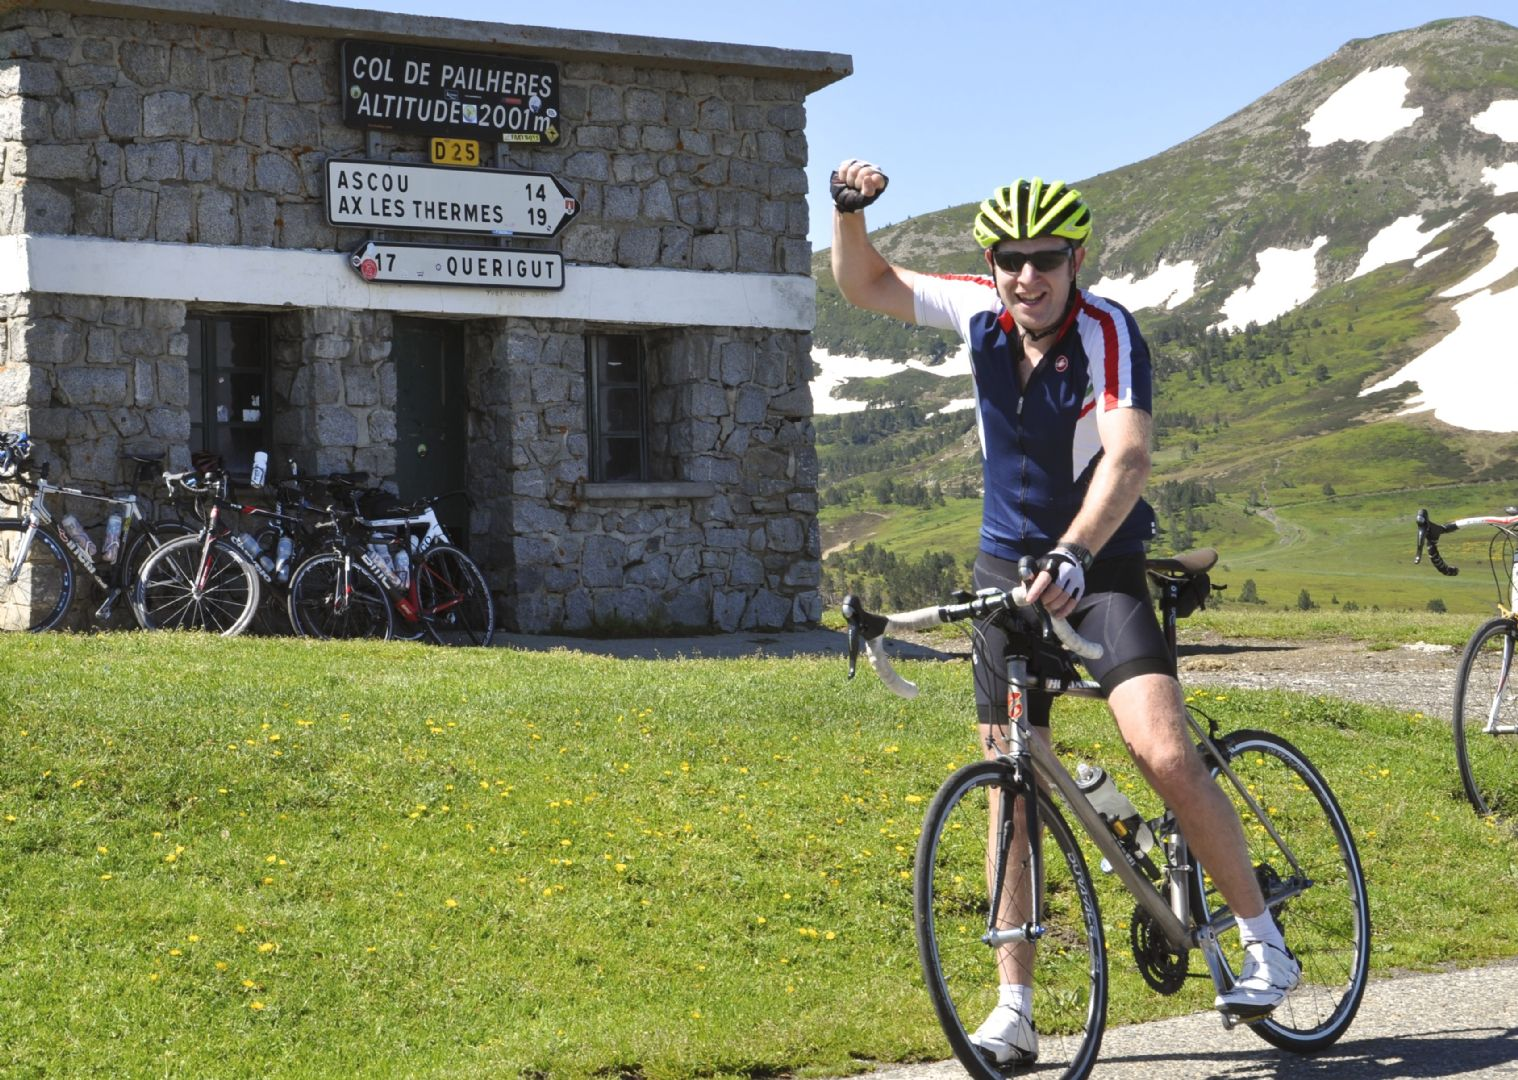 francepyrenees16.jpg - France - Trans Pyrenees Challenge - Guided Road Cycling Holiday - Road Cycling